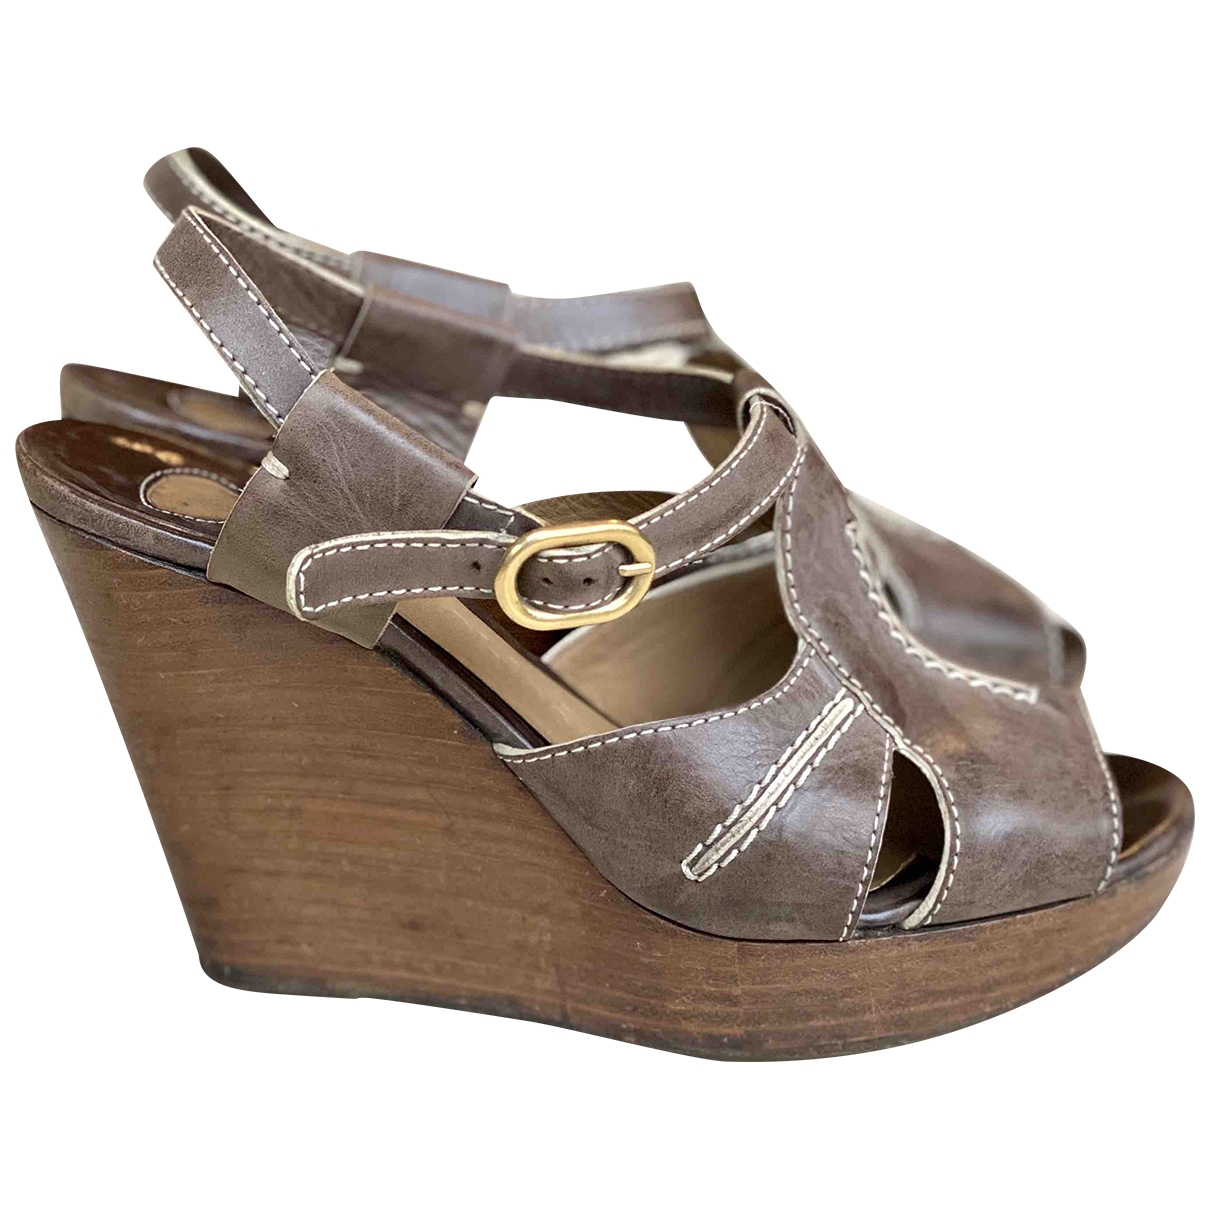 Chloé \N Brown Leather Sandals for Women 36 EU